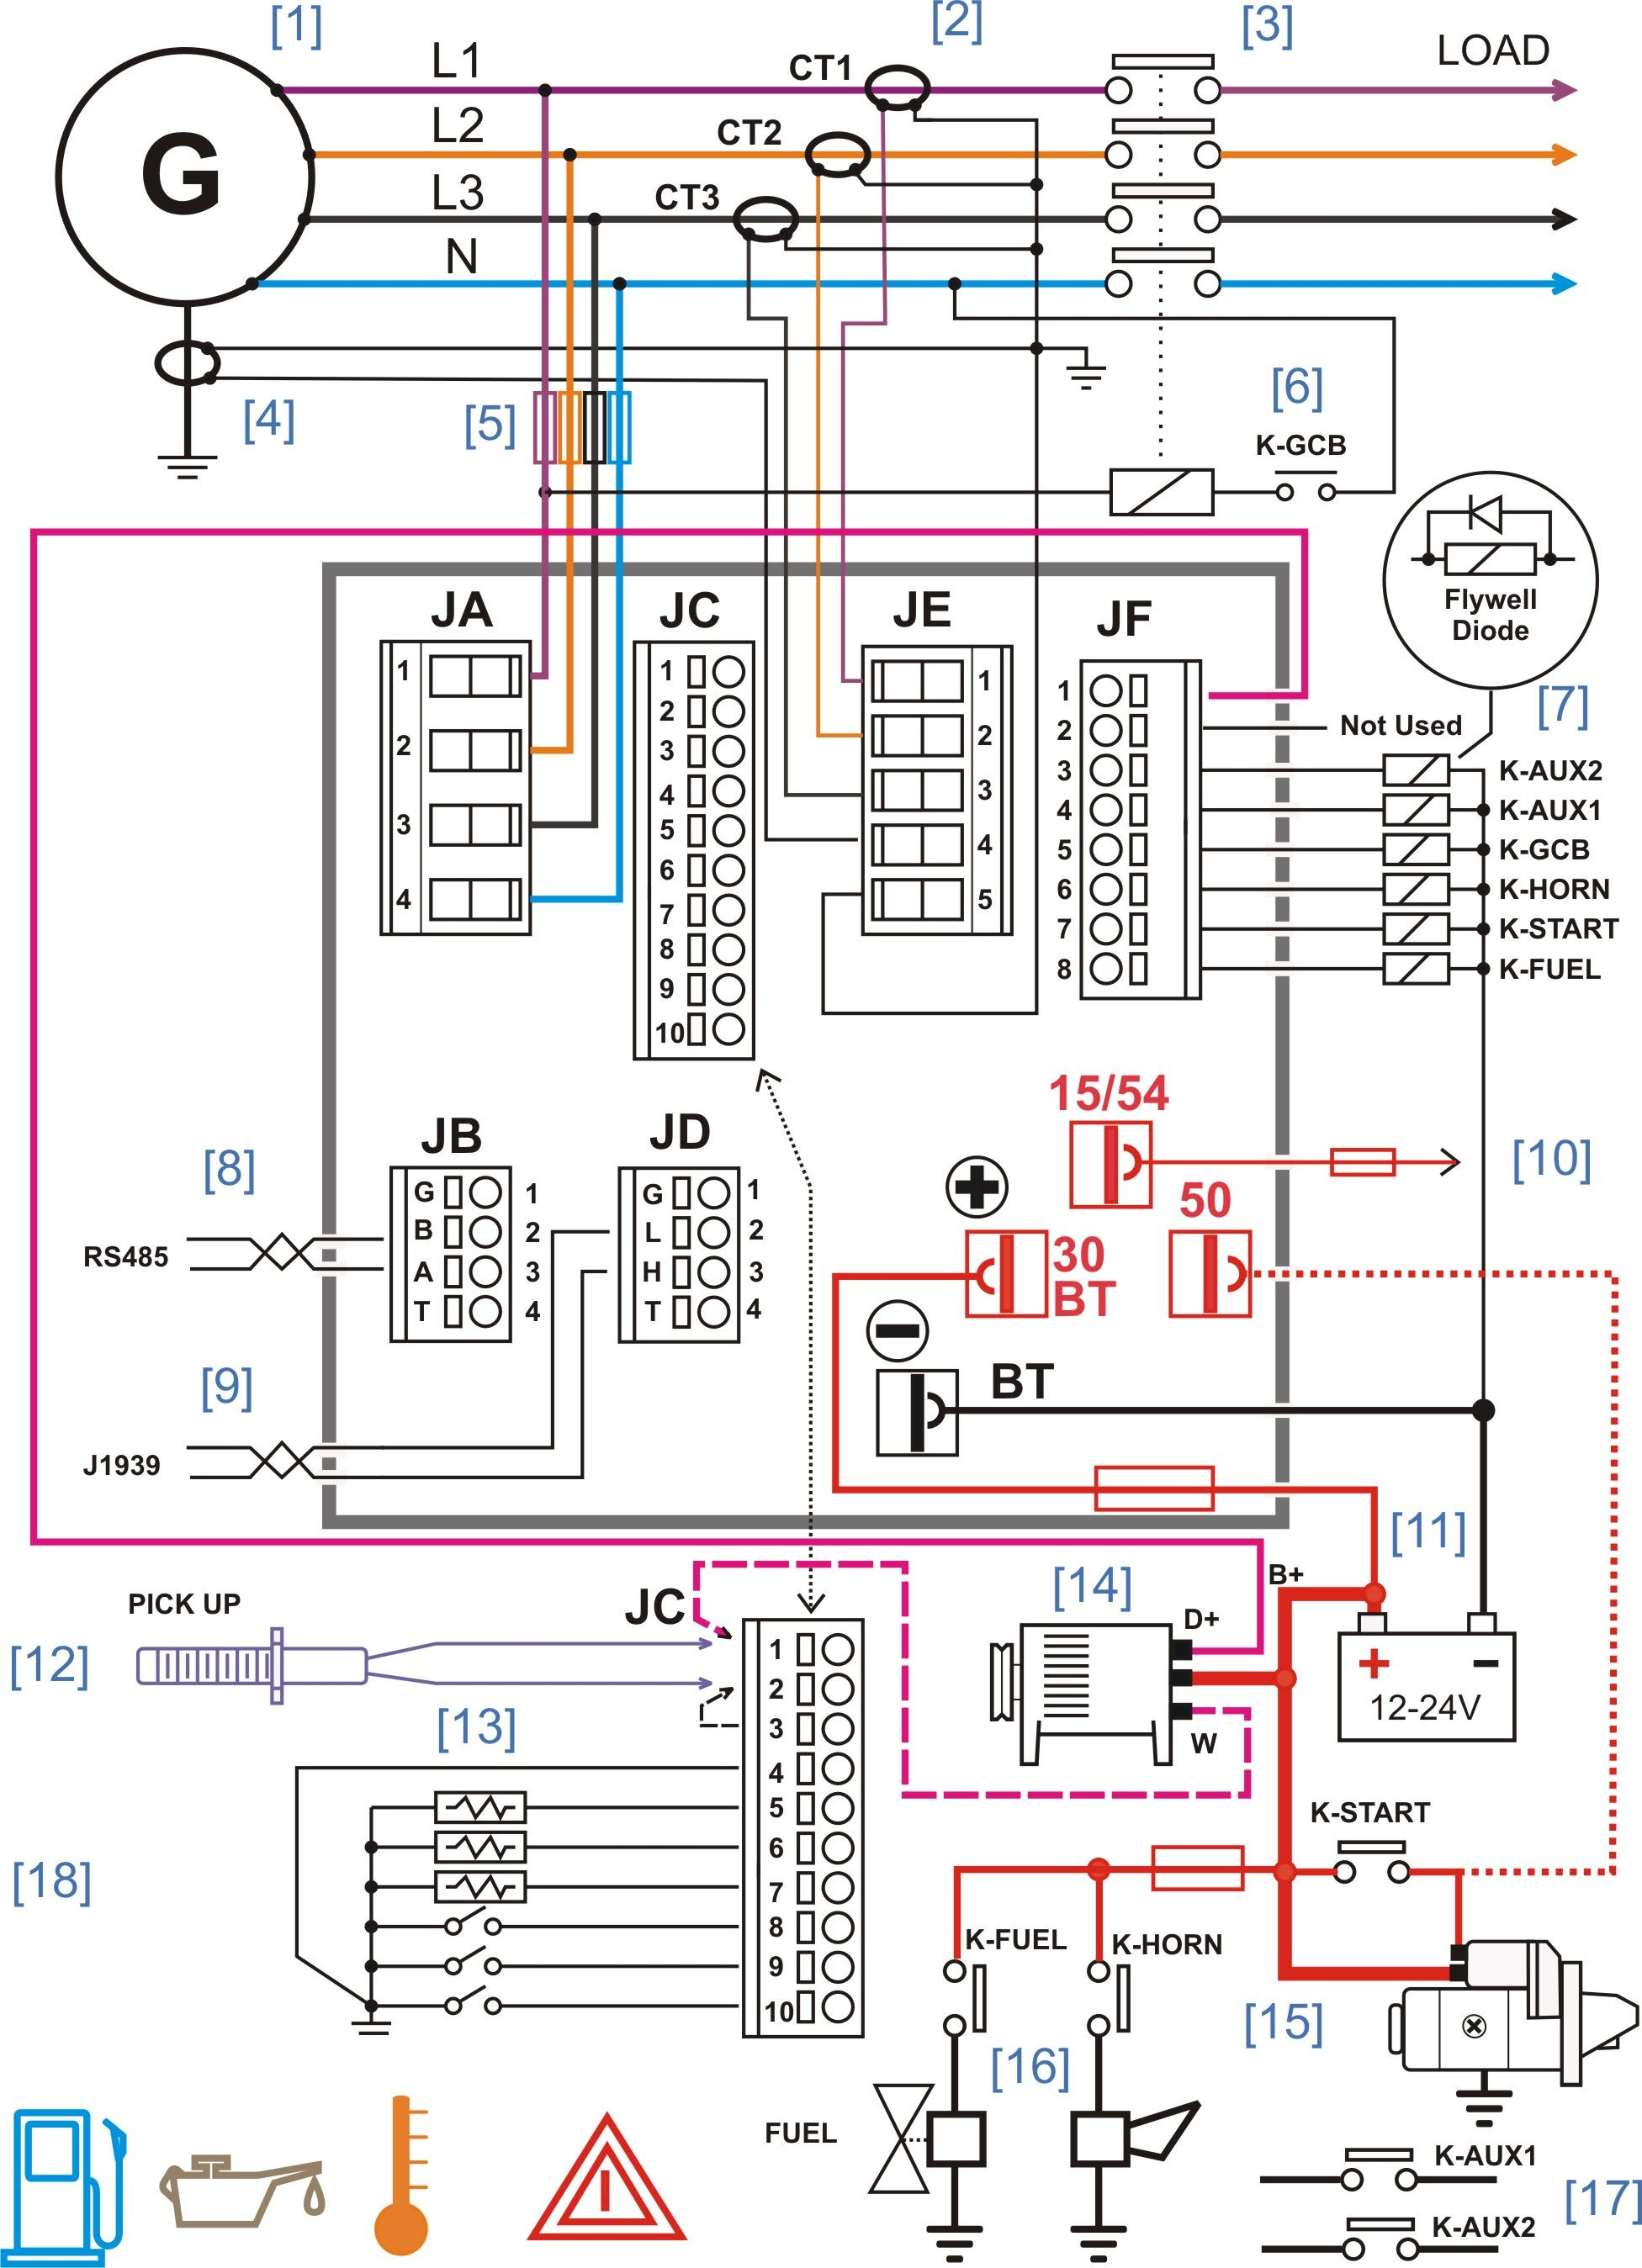 Diesel Generator Control Panel Wiring Diagram Generators In Electrical For Homes Home Symbols Transfer Switch